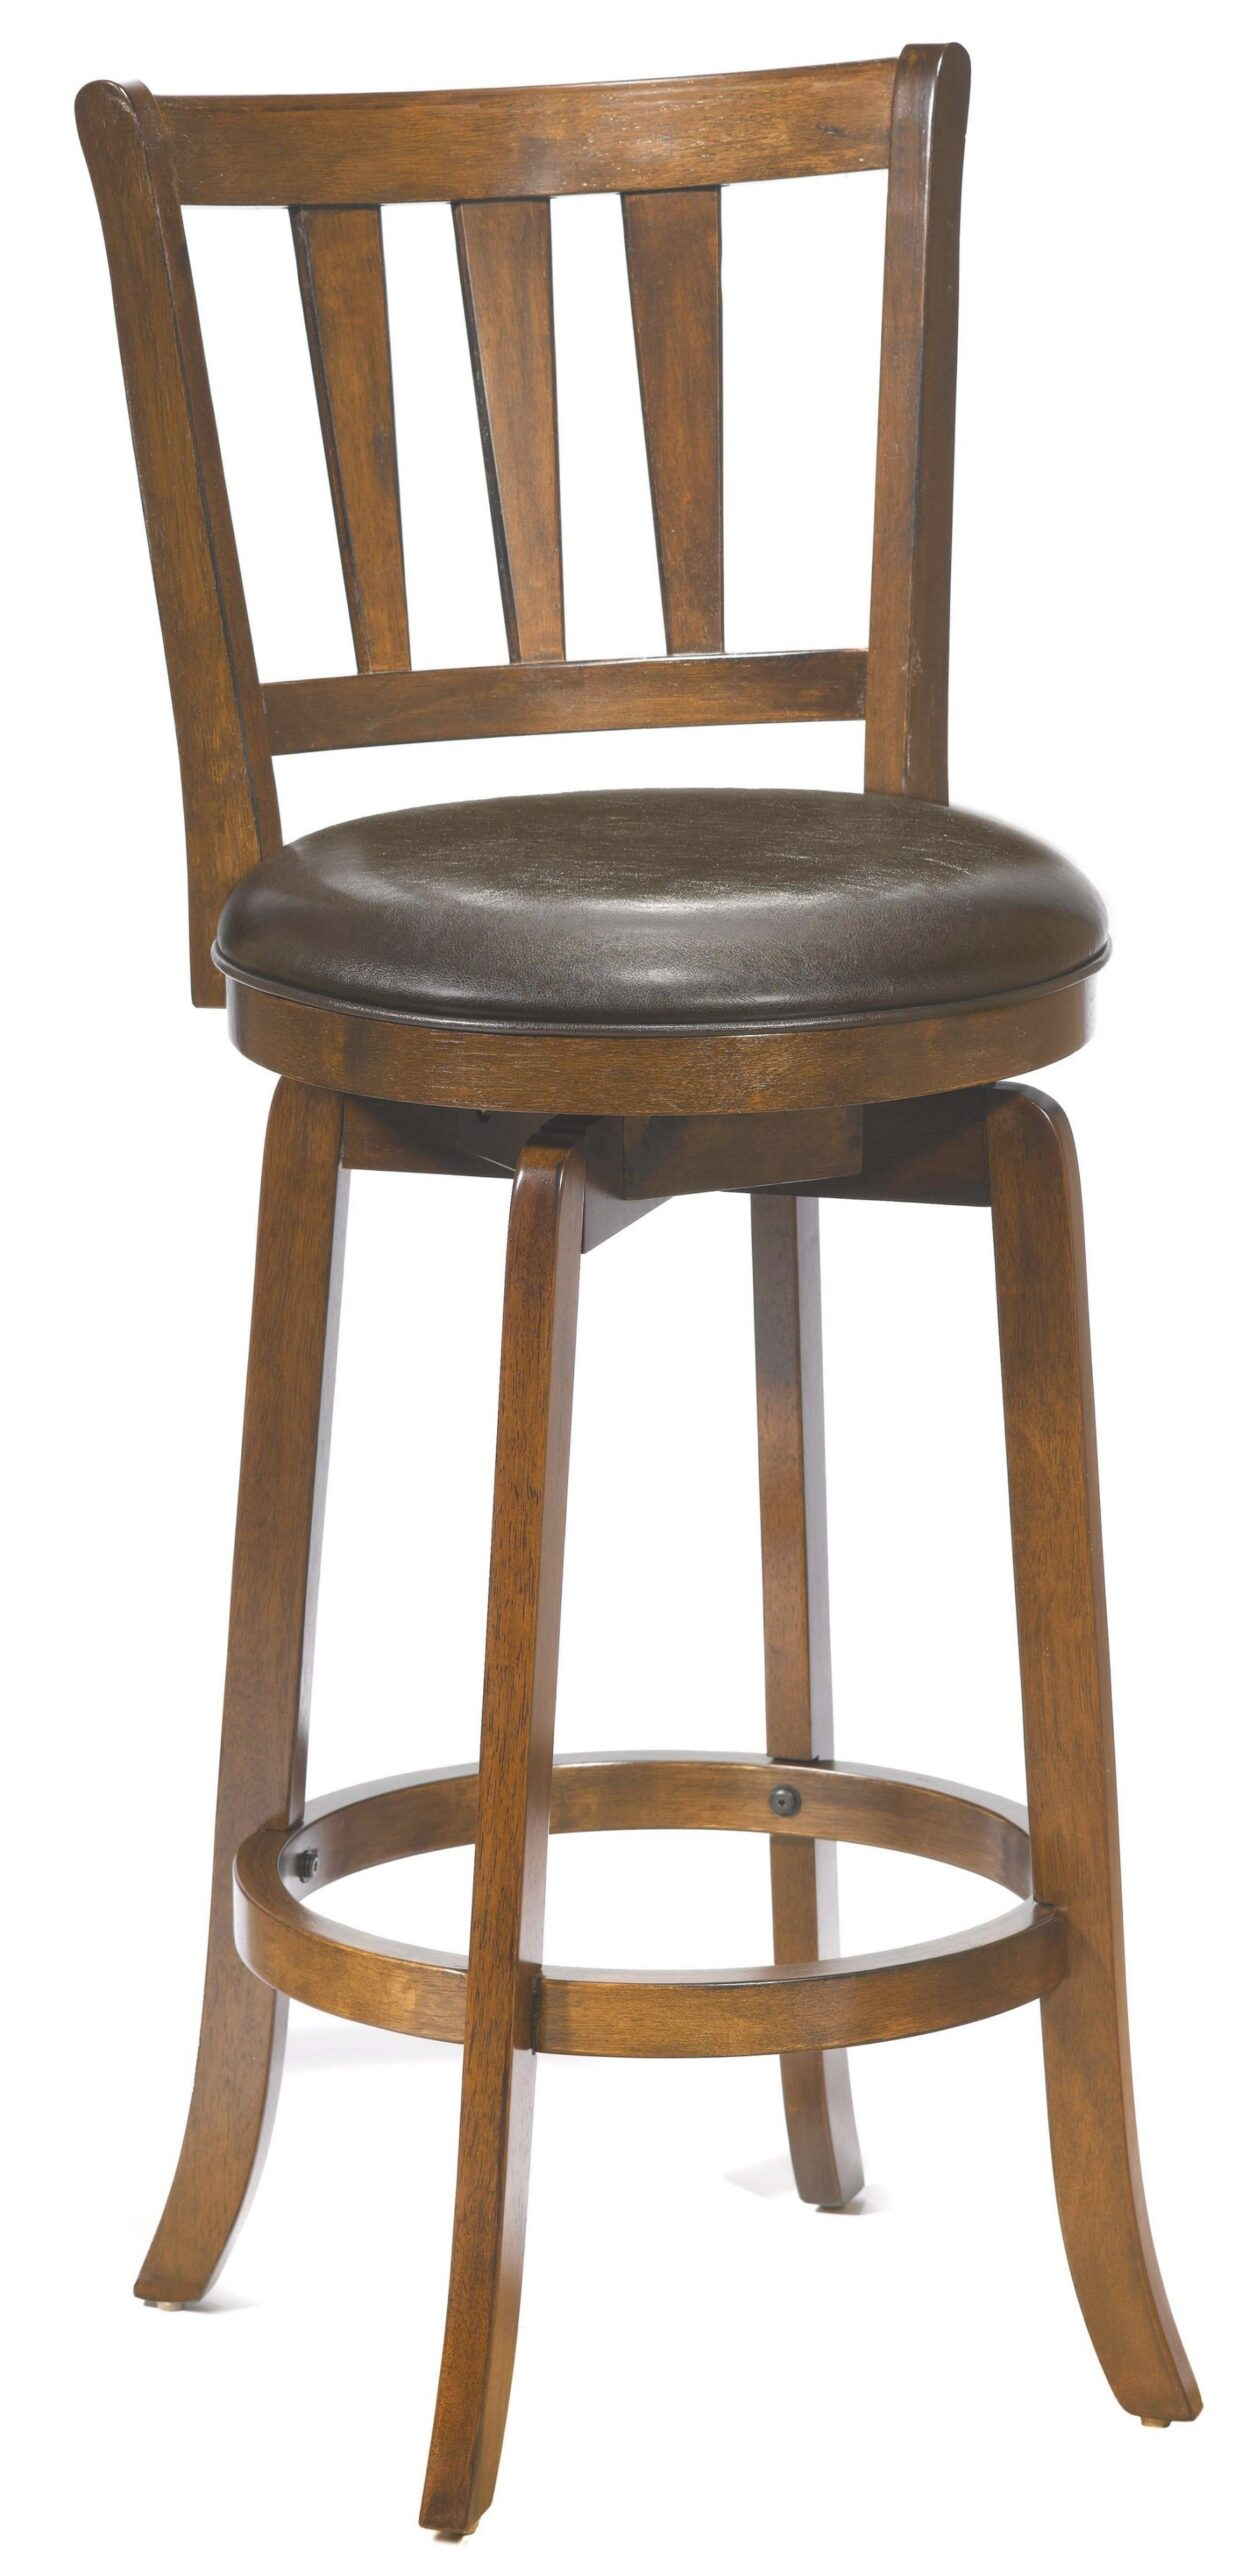 "Hillsdale Wood Stools 26"" Counter Height Presque Isle with Counter Height Bar Stools"